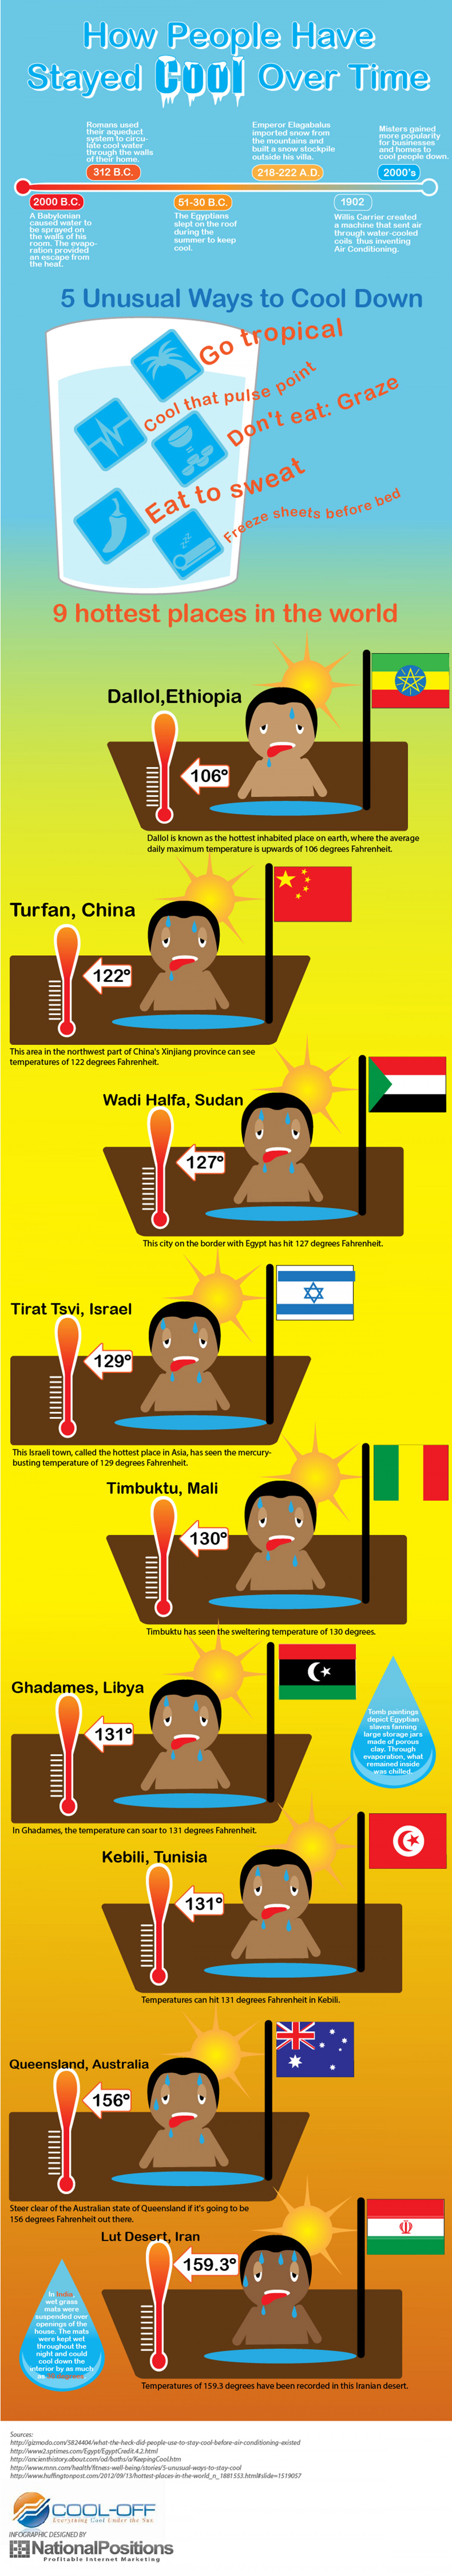 Ways to Keep Cool in Scalding Heat Infographic